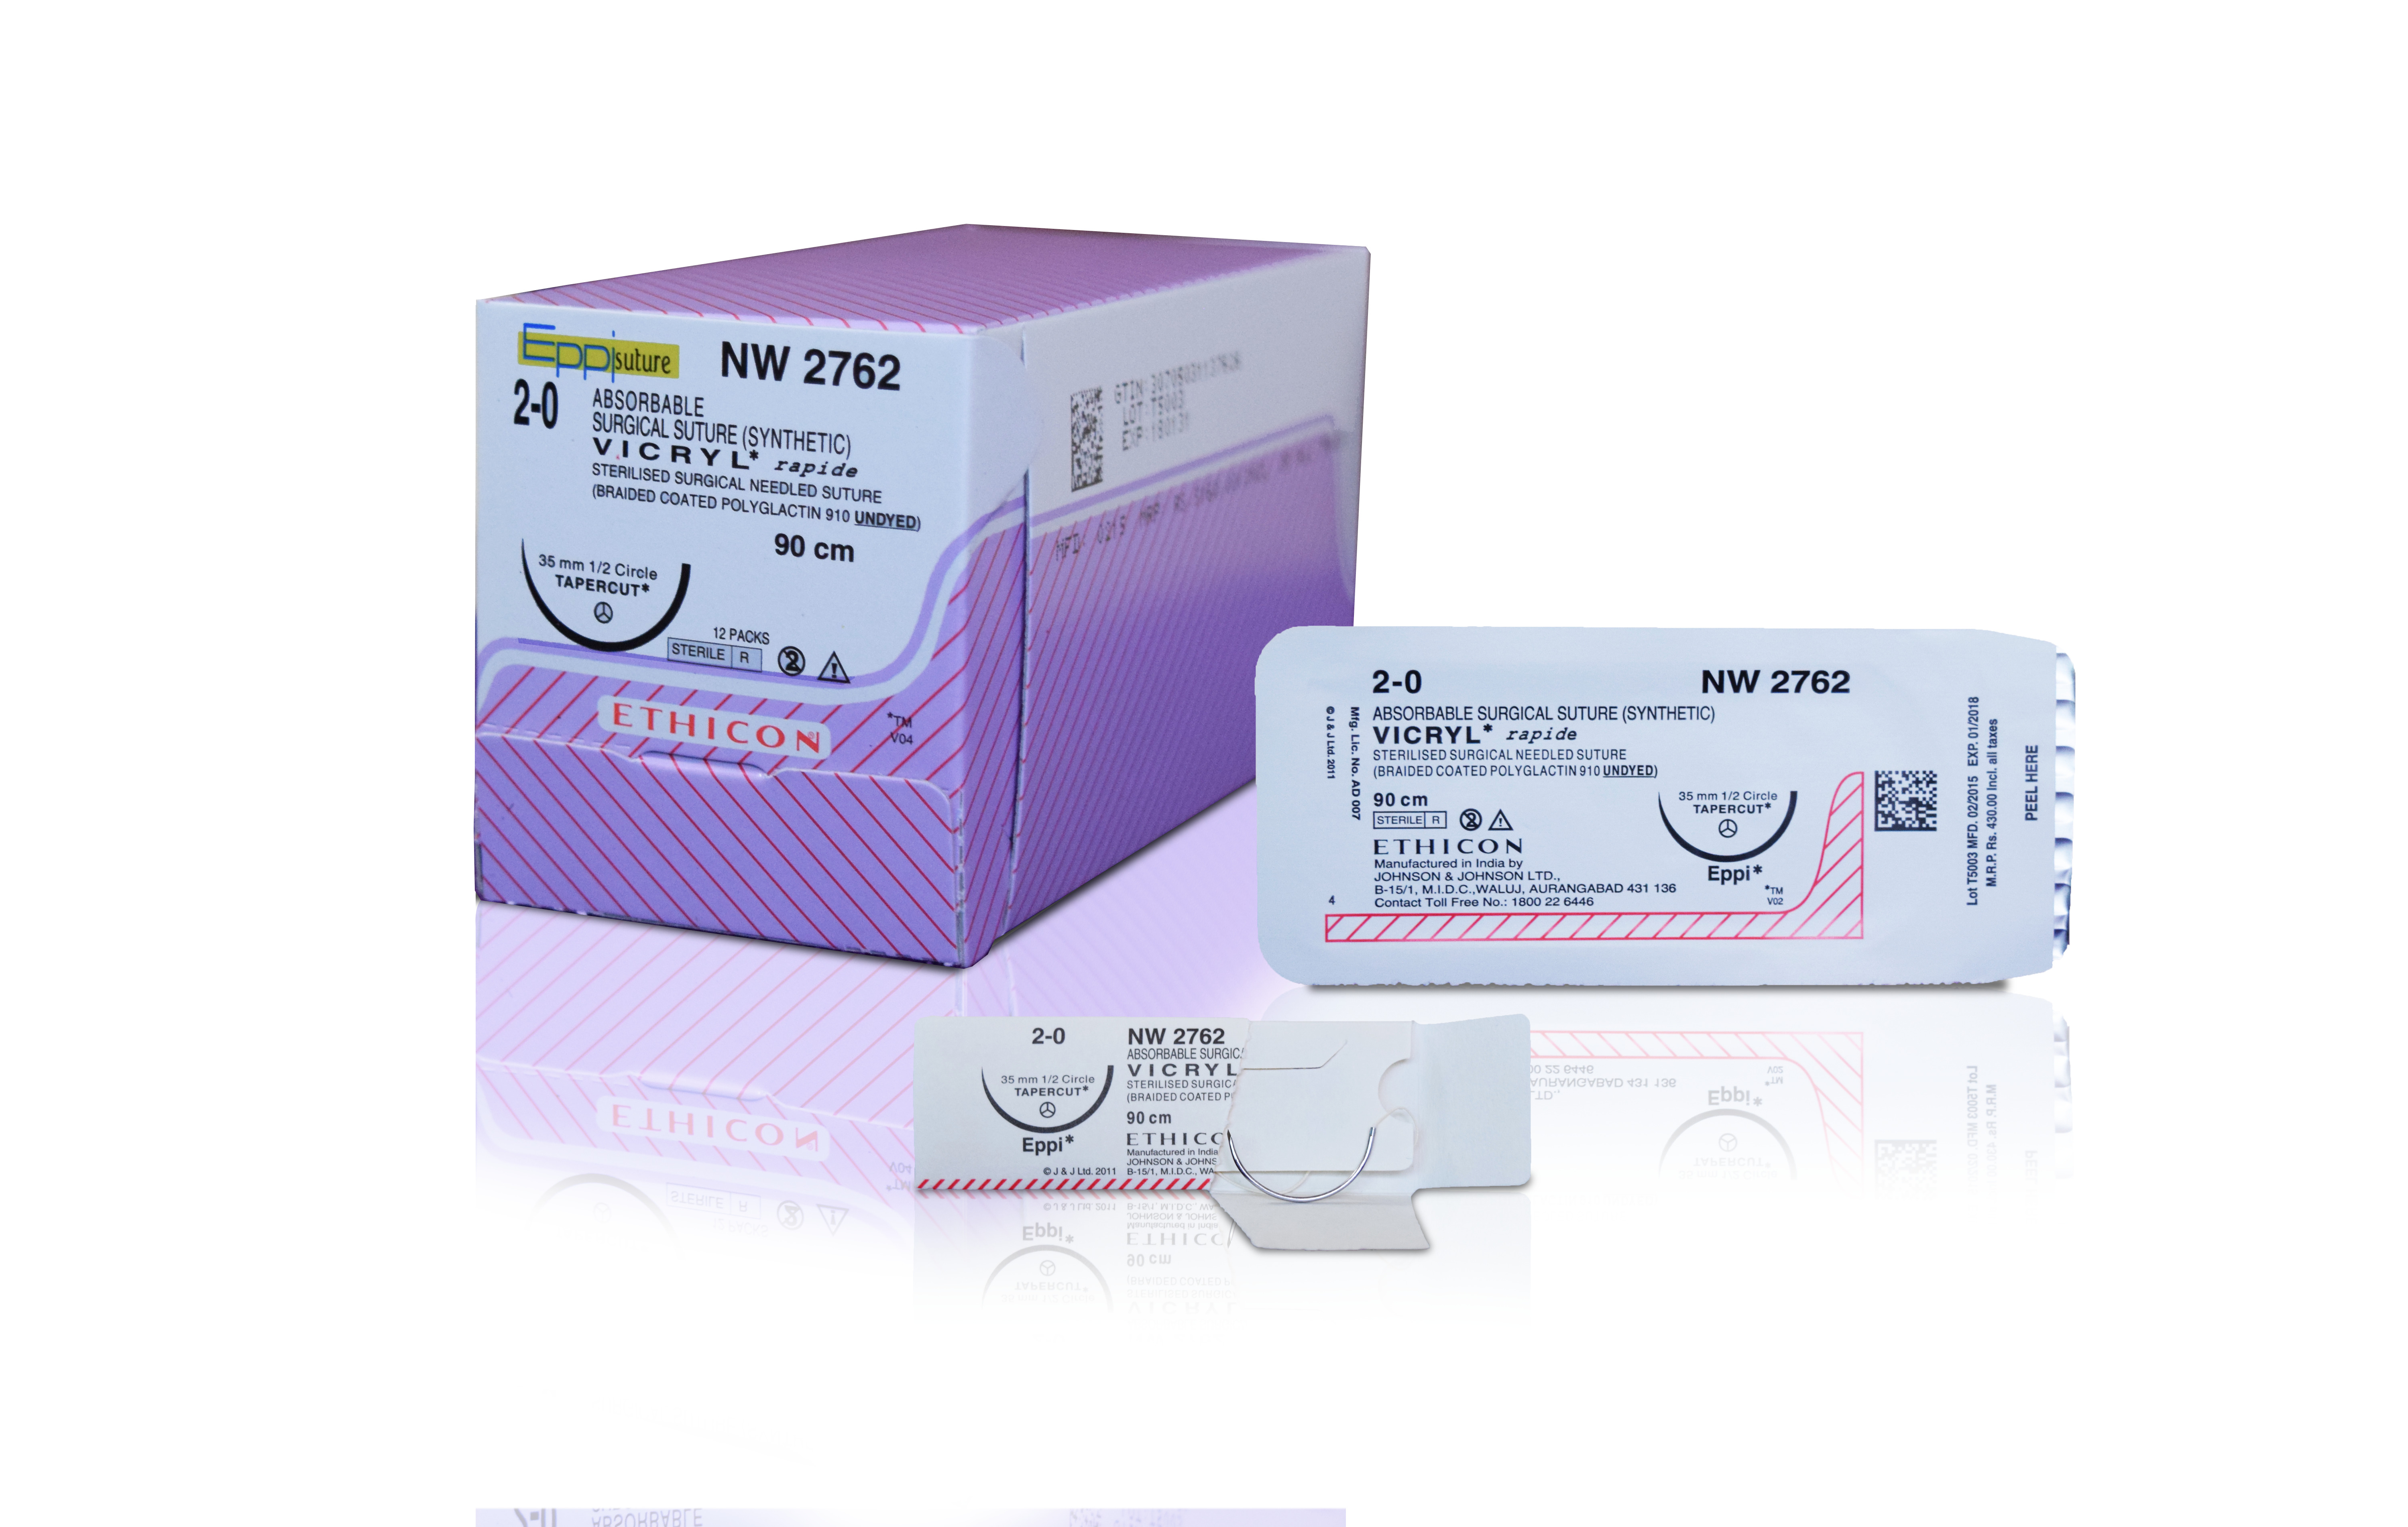 NW2777 +VICRYL RAPIDE 2-0 1/2 RBC 36MM